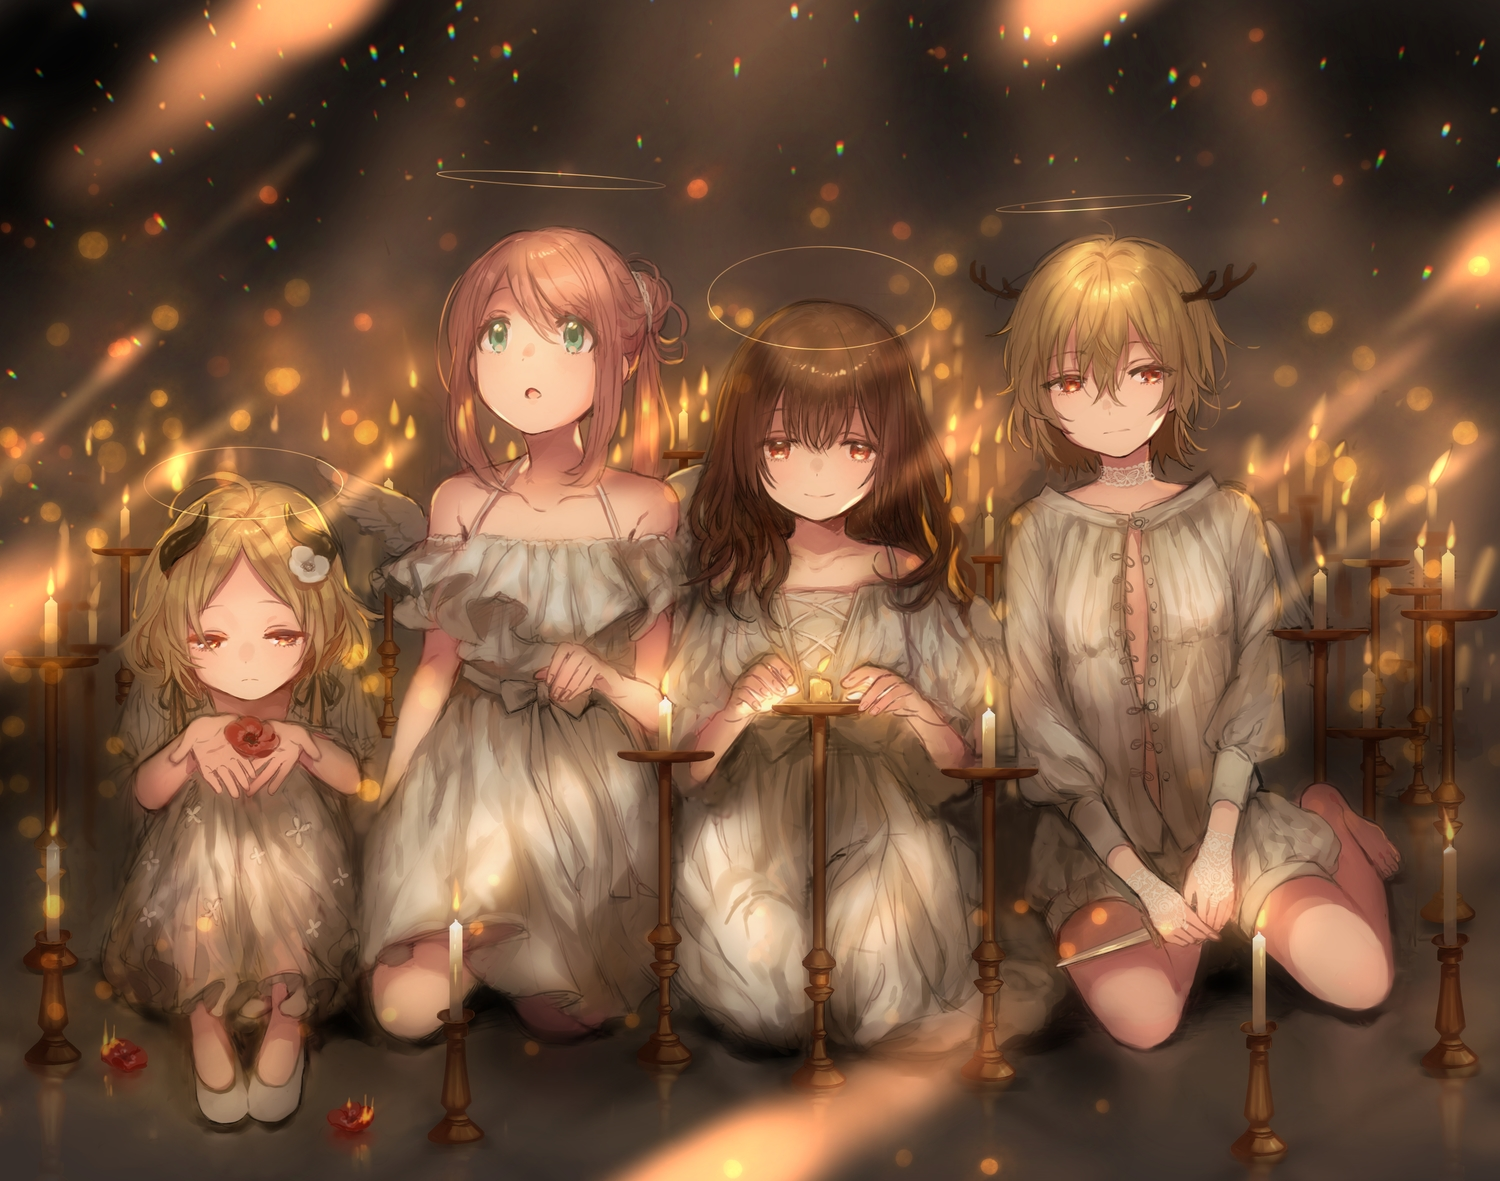 brown_hair canarinu dress green_eyes group halo horns knife long_hair orange_eyes original short_hair weapon wings